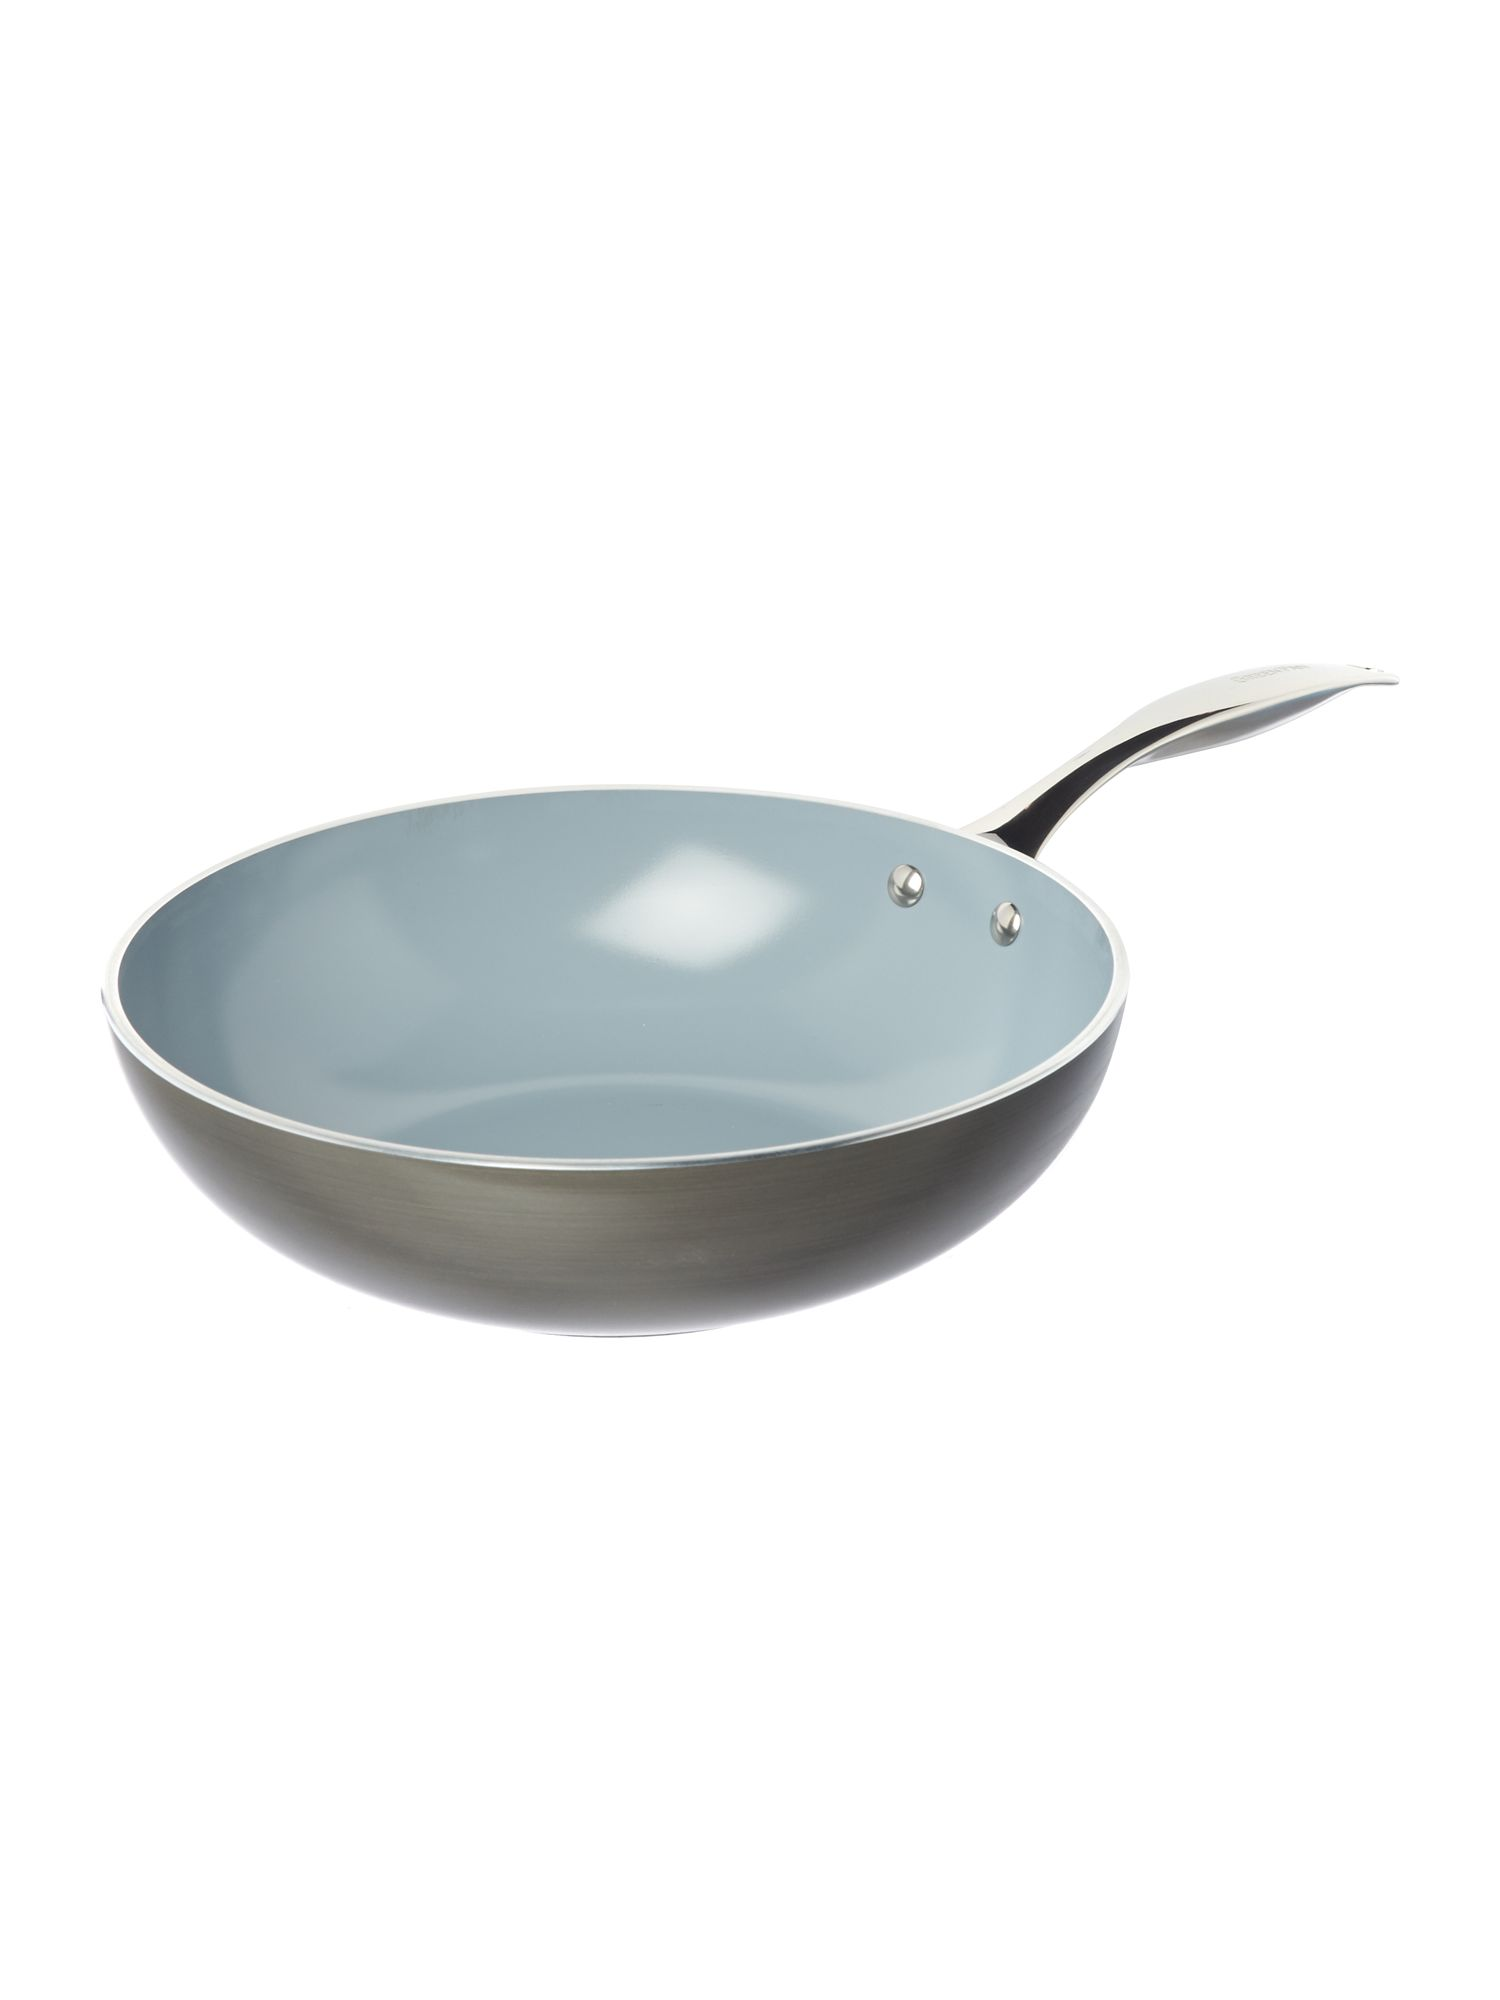 Induction Wok Induction Wok Shop For Cheap Cookers And Ovens And Save Online